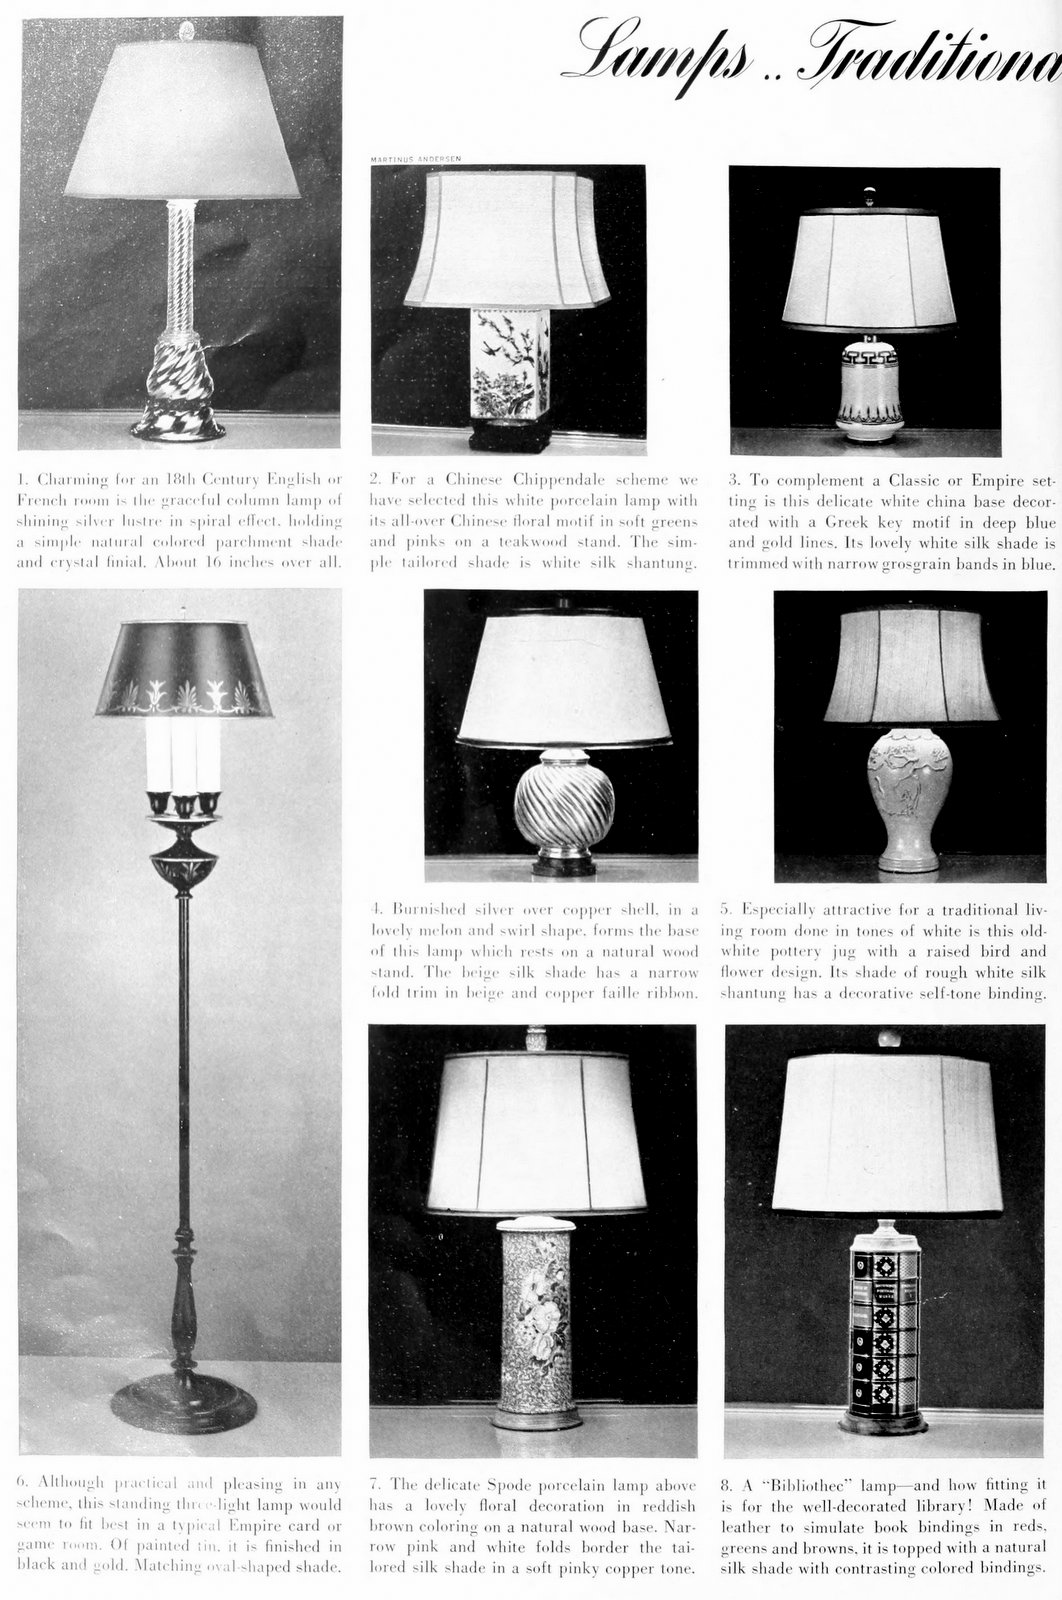 Beautiful traditional lamp styles from 1937